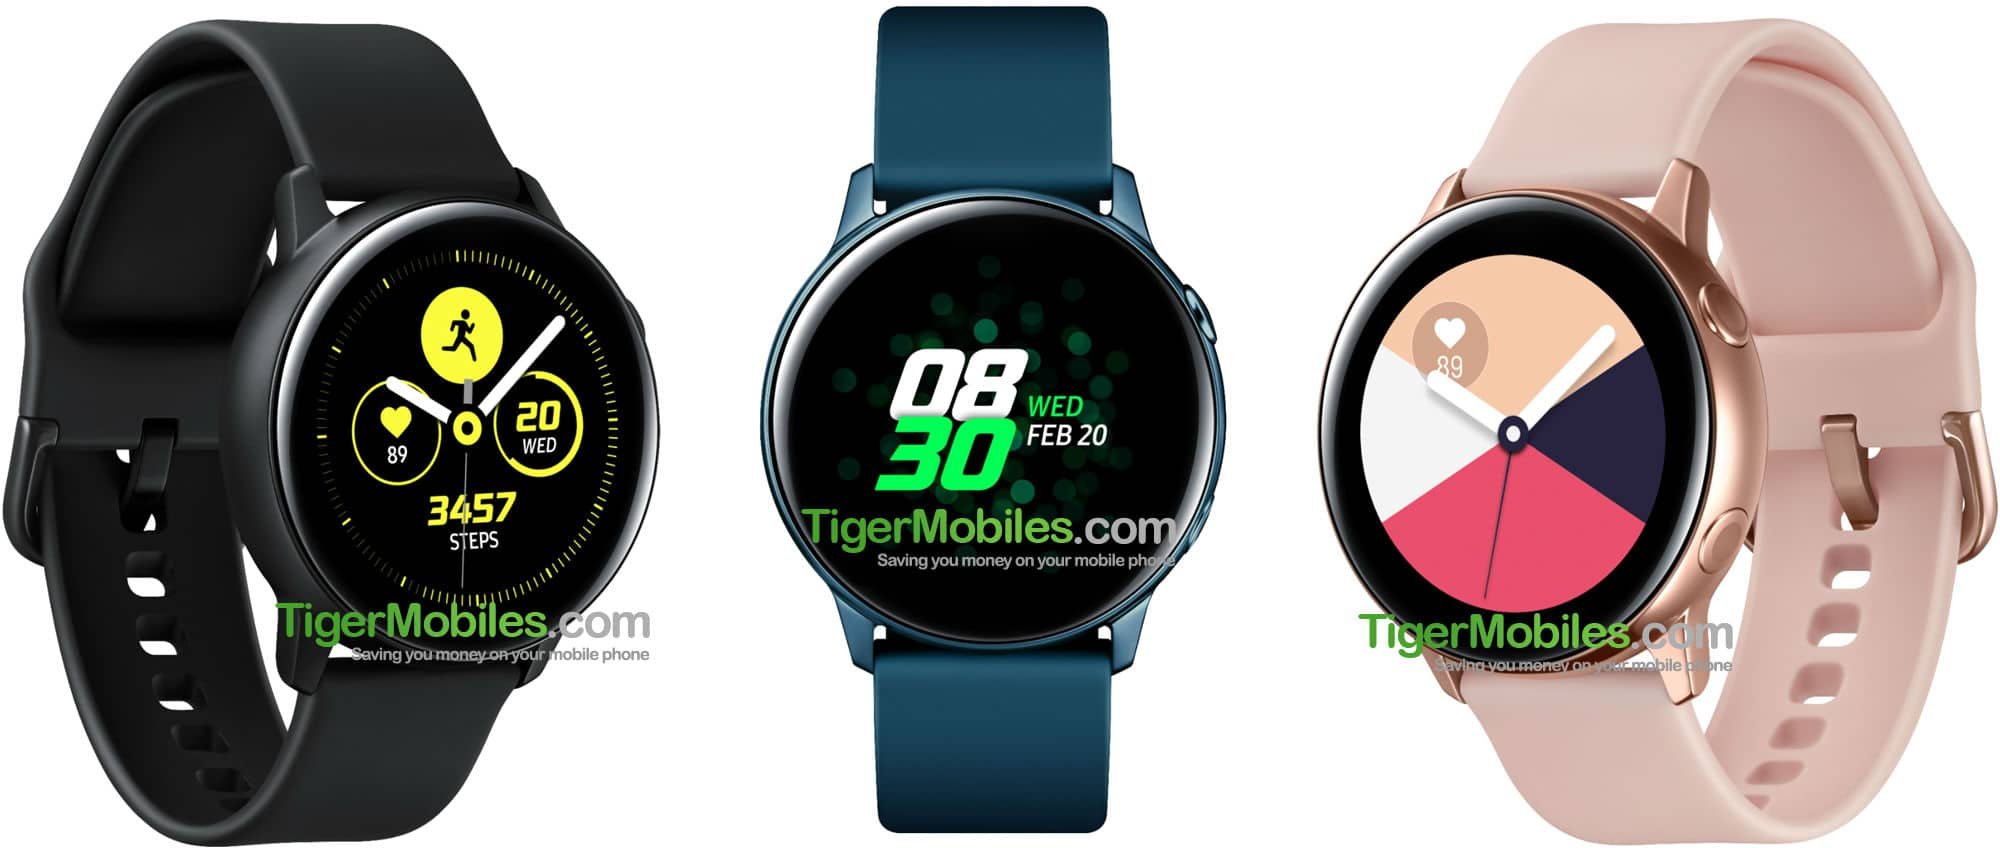 [Exclusive] Samsung Galaxy Sport Renders – Samsung's New Smartwatch for 2019